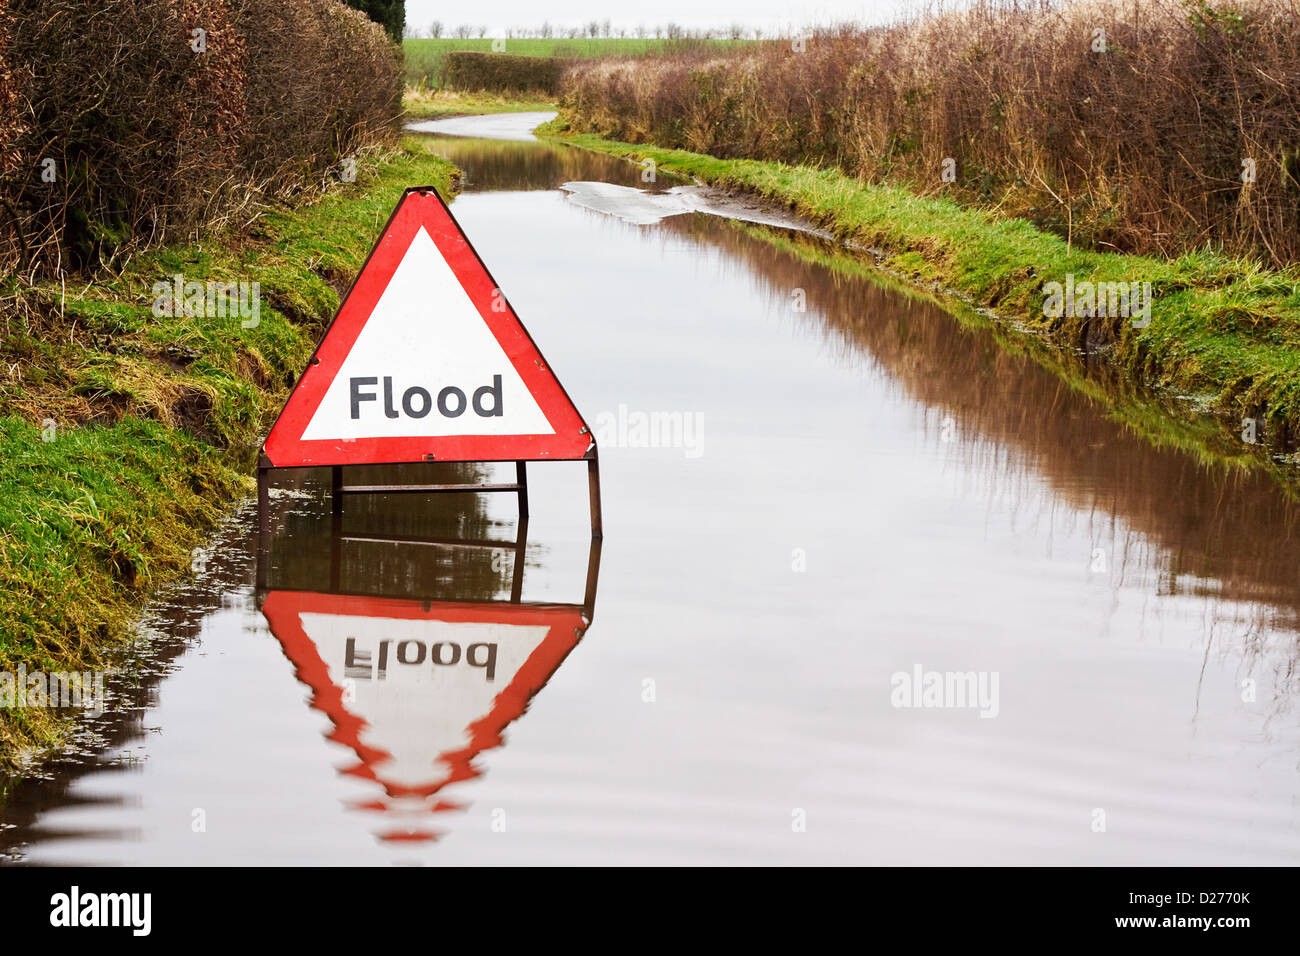 Flood warning sign on a flooded country road - Stock Image